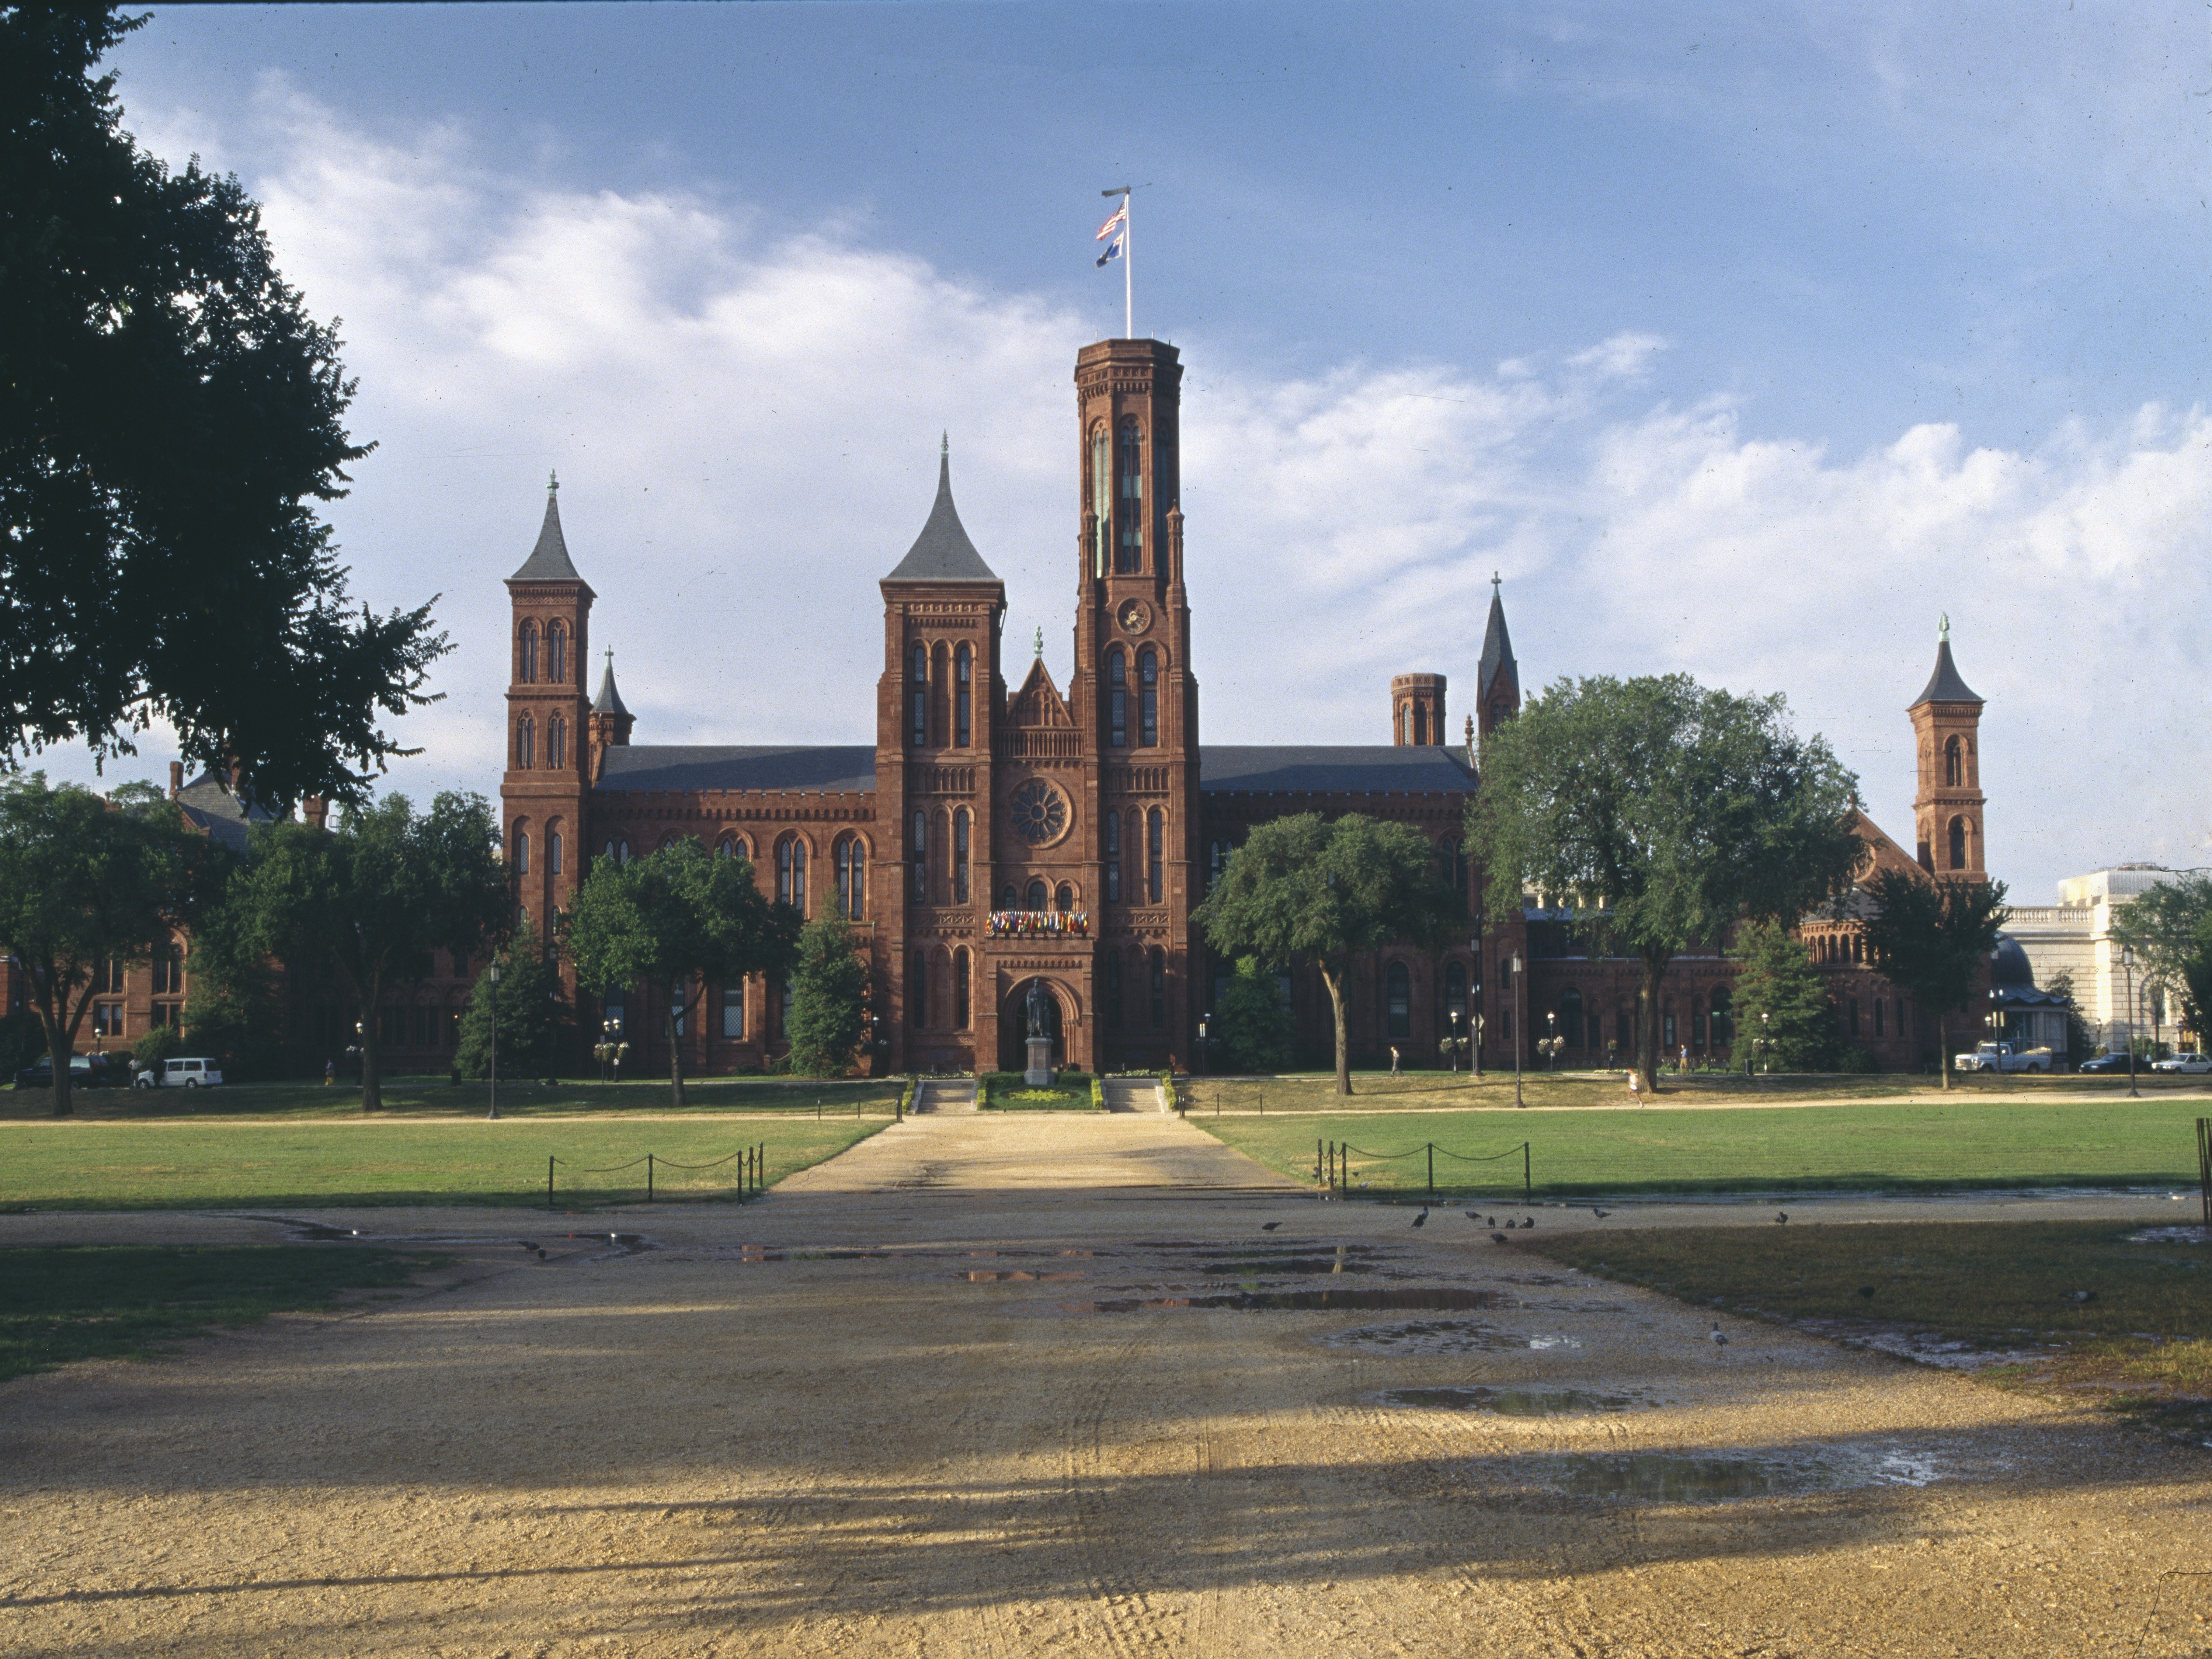 North Facade of the Smithsonian Castle